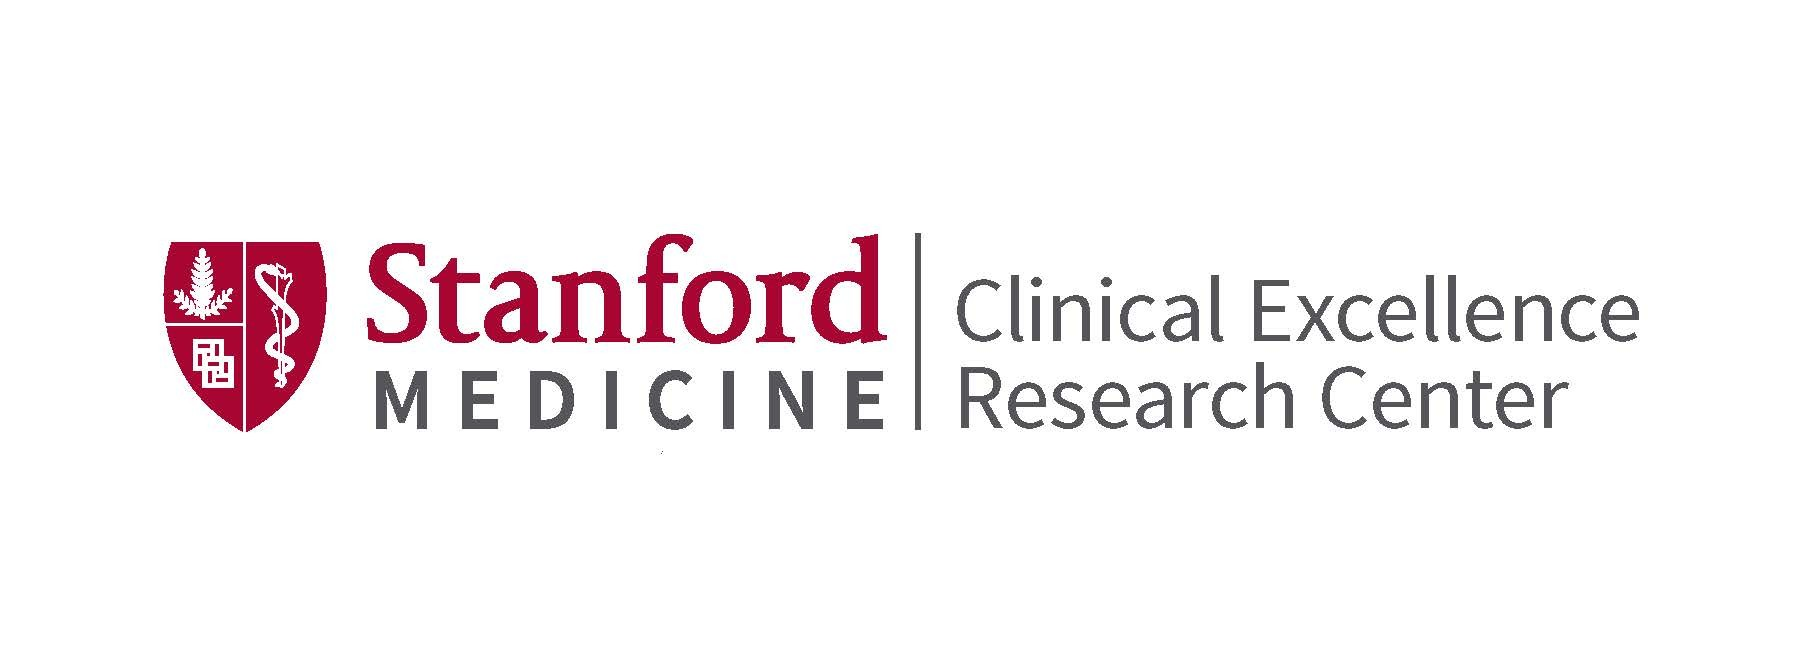 Stanford Clinical Excellence Research Center | LinkedIn